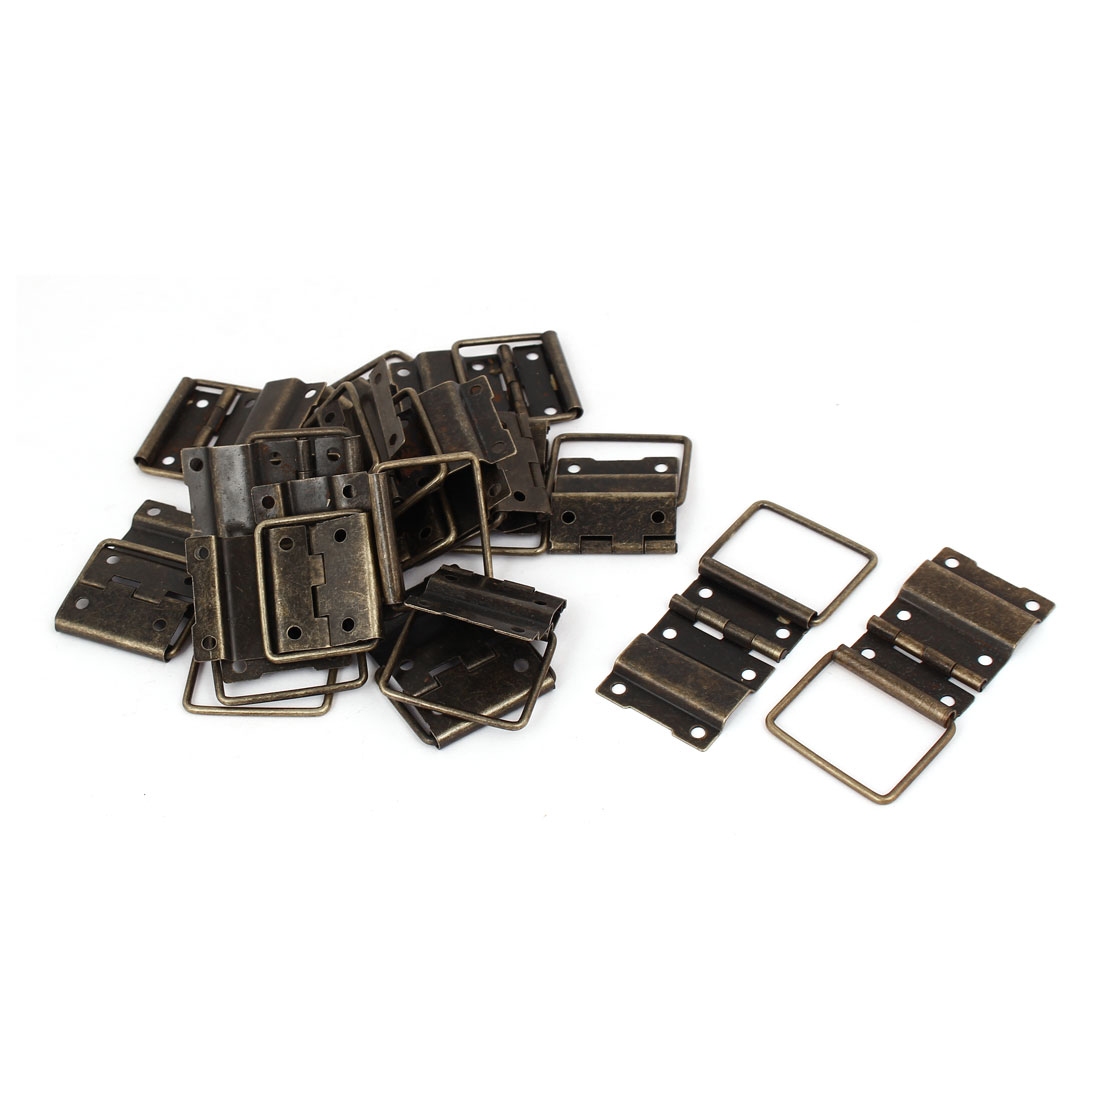 Box Case Retro Style Positioning Support Hinges Bronze Tone 44mmx30mm 20pcs